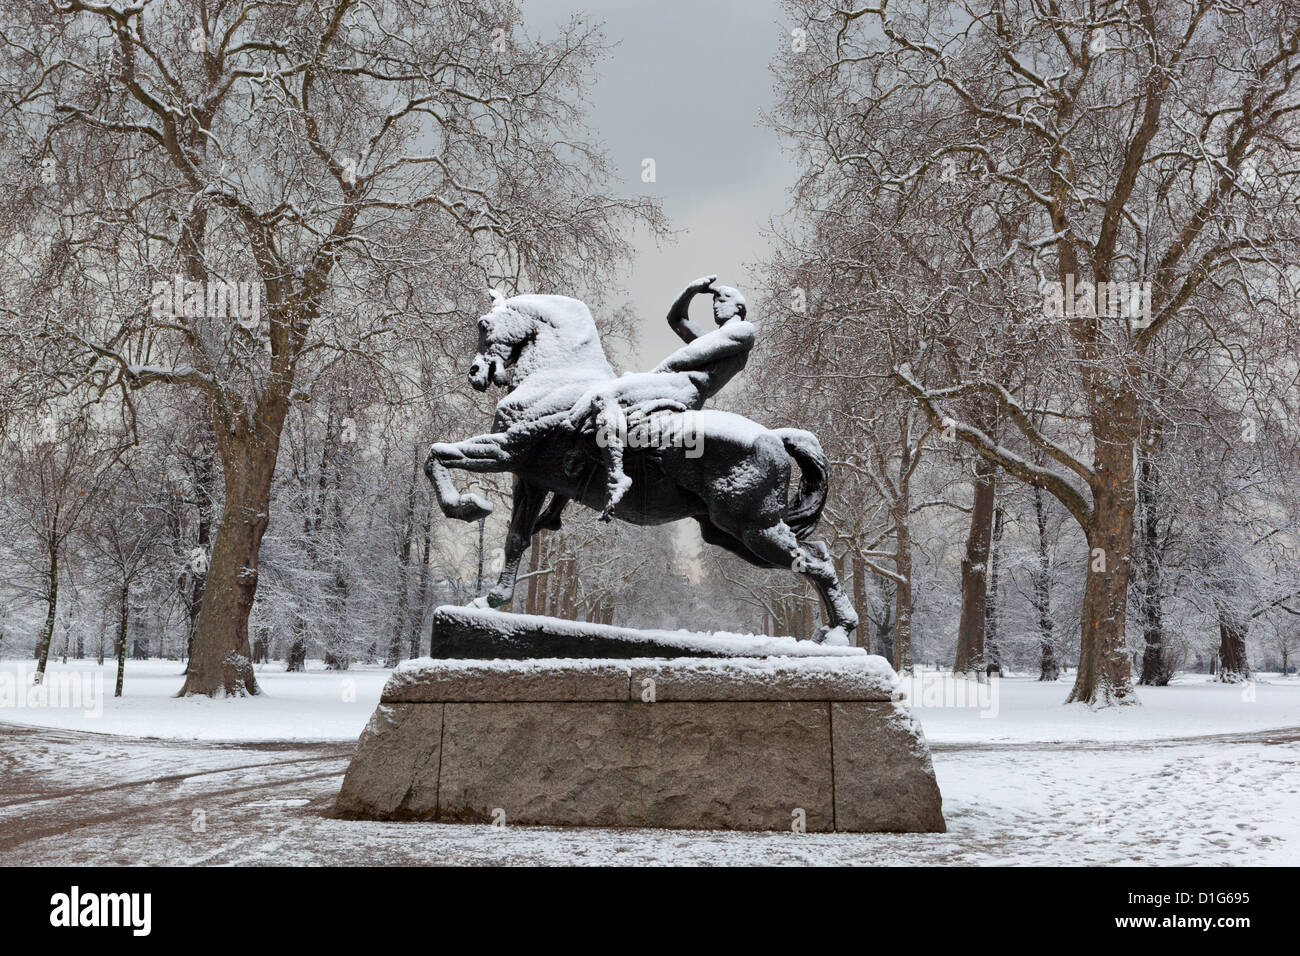 Physical Energy statue in winter, Kensington Gardens, London, England, United Kingdom, Europe - Stock Image